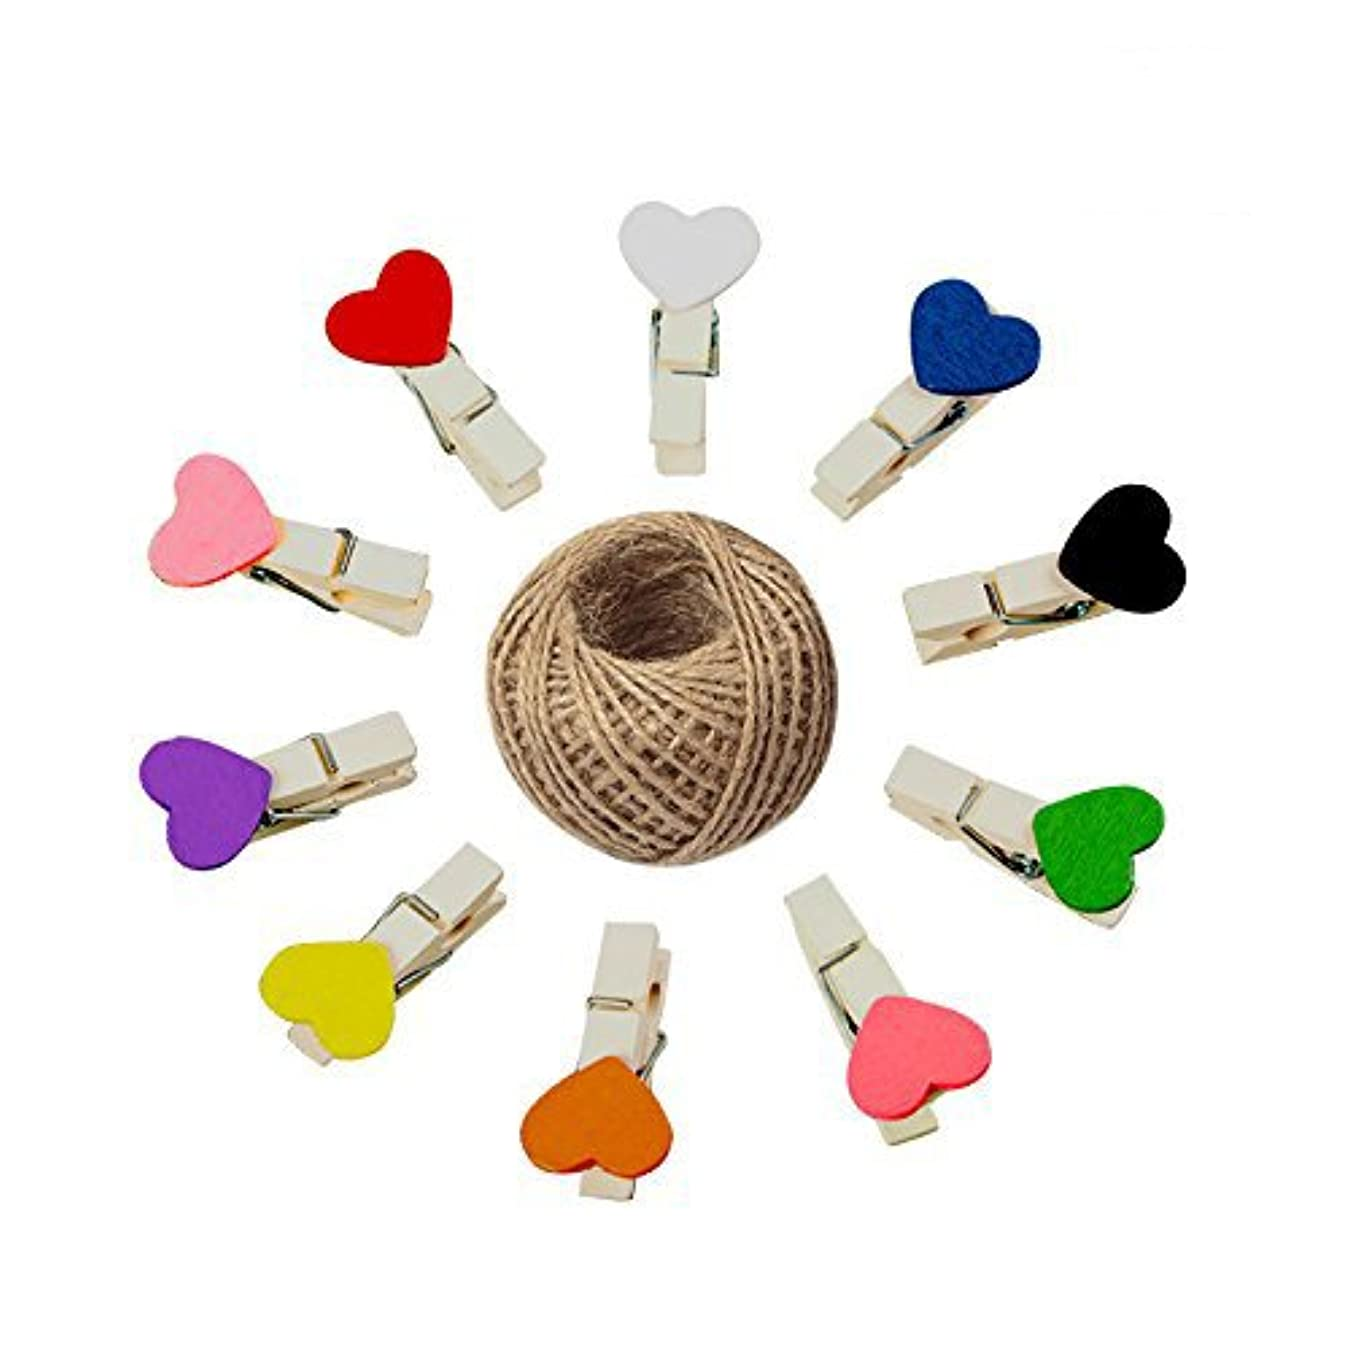 KINGLAKE 100 Pcs Mini Colored Wooden Heart Clothespins 3.5cm Photo Craft Clips for Wedding Party Decor with 100 Feet Jute Twine